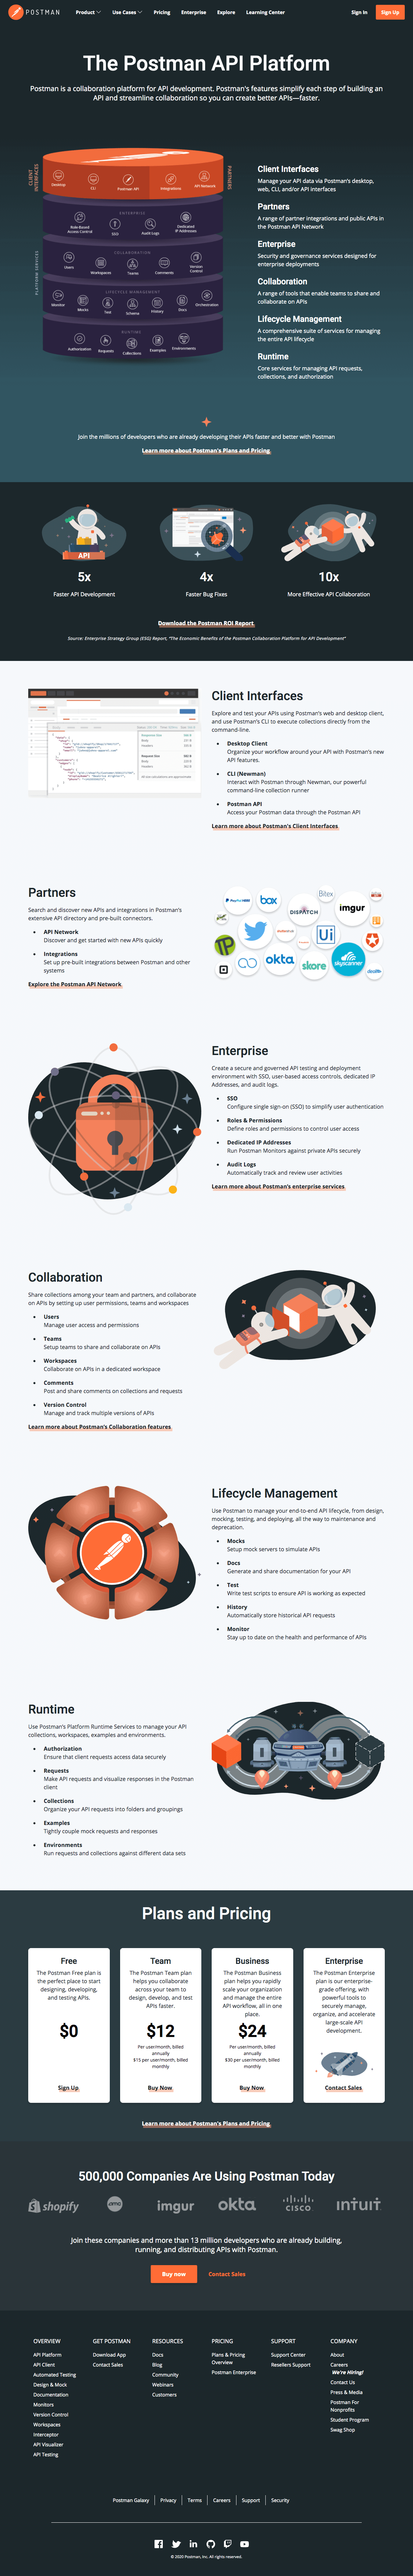 Postman – Features page